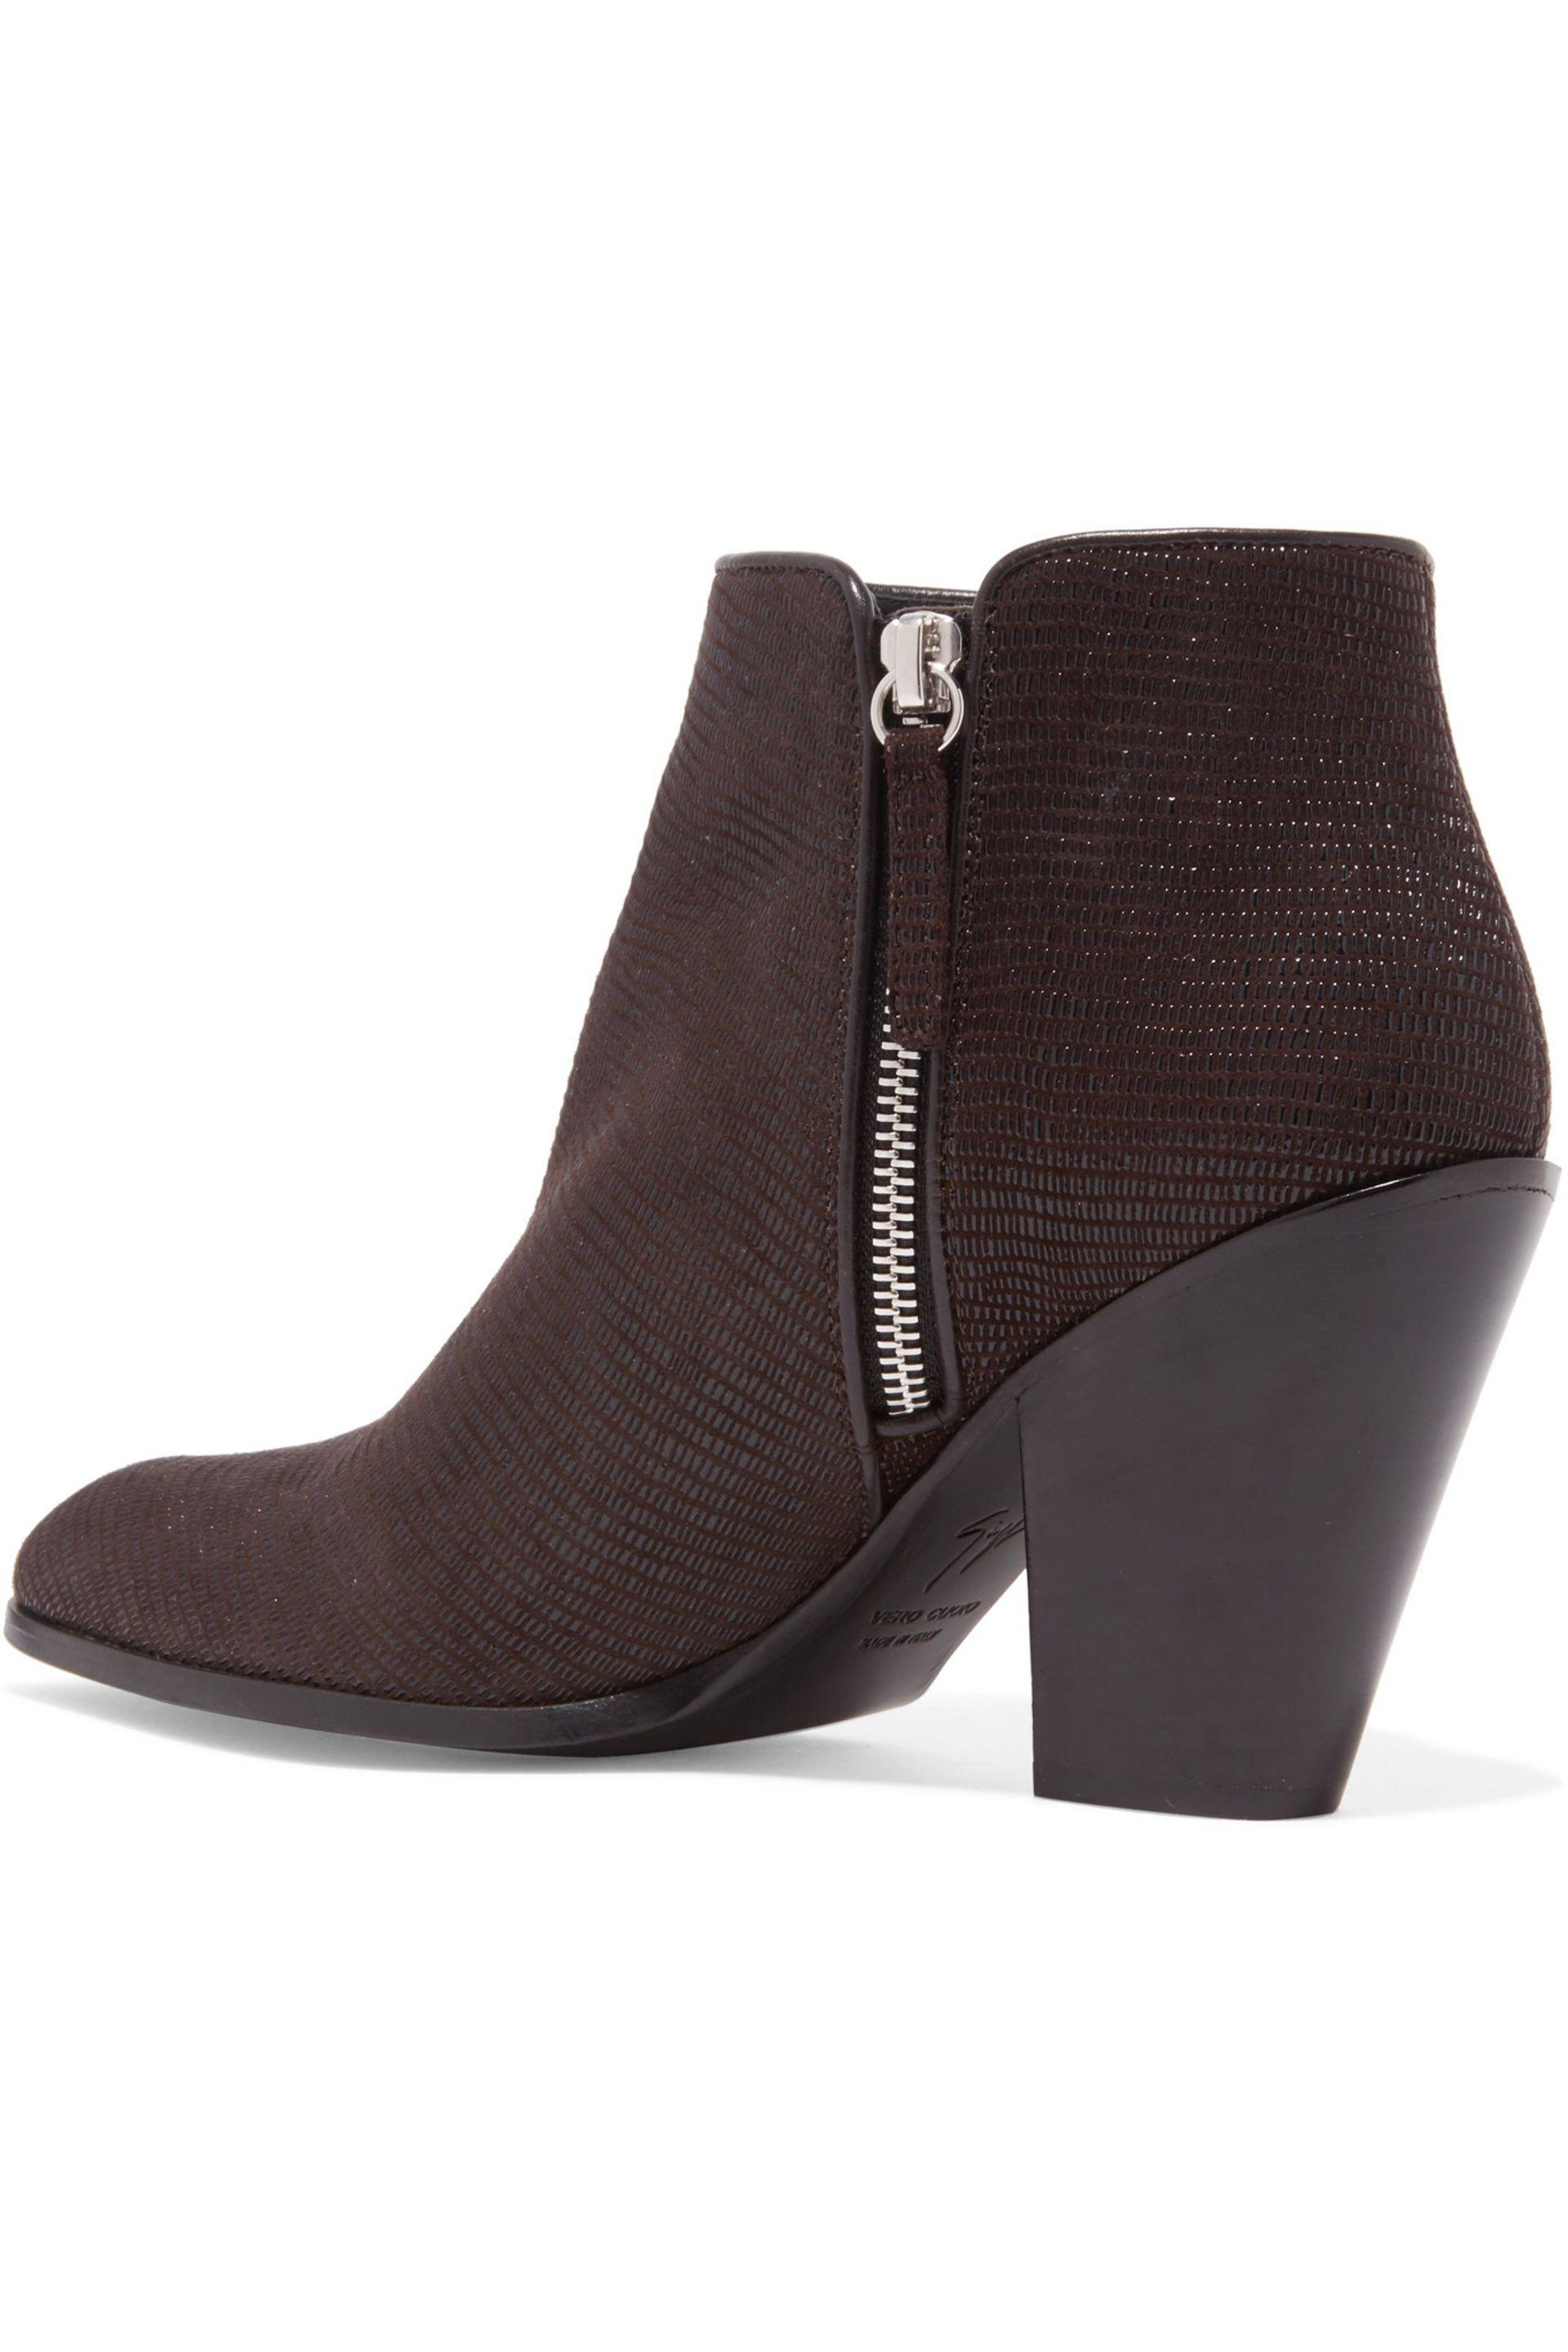 Giuseppe Zanotti Lizard-effect Leather Ankle Boots in Brown